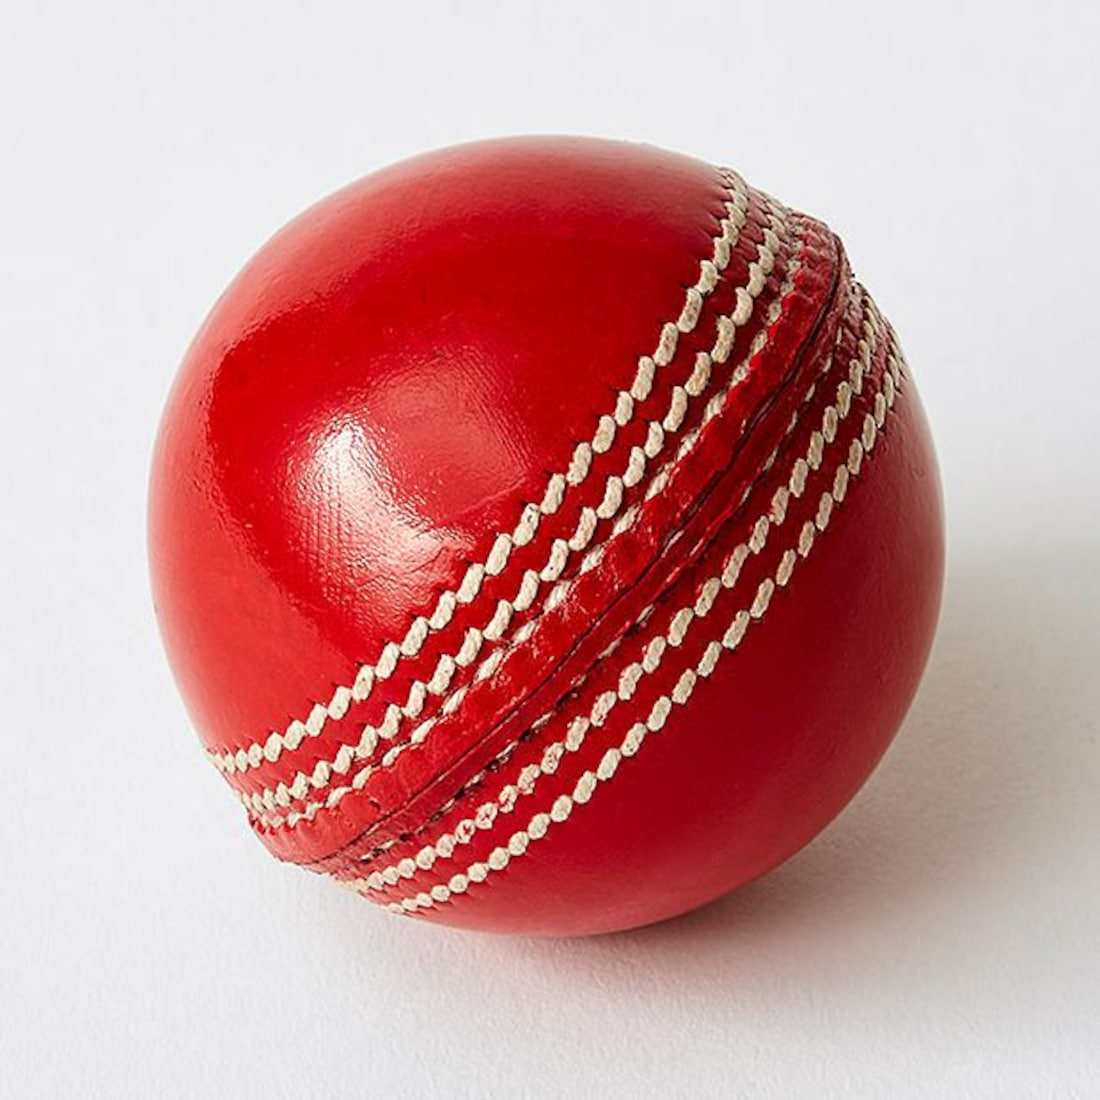 Cricket Ball For Men Cricketers Weight 156 grams